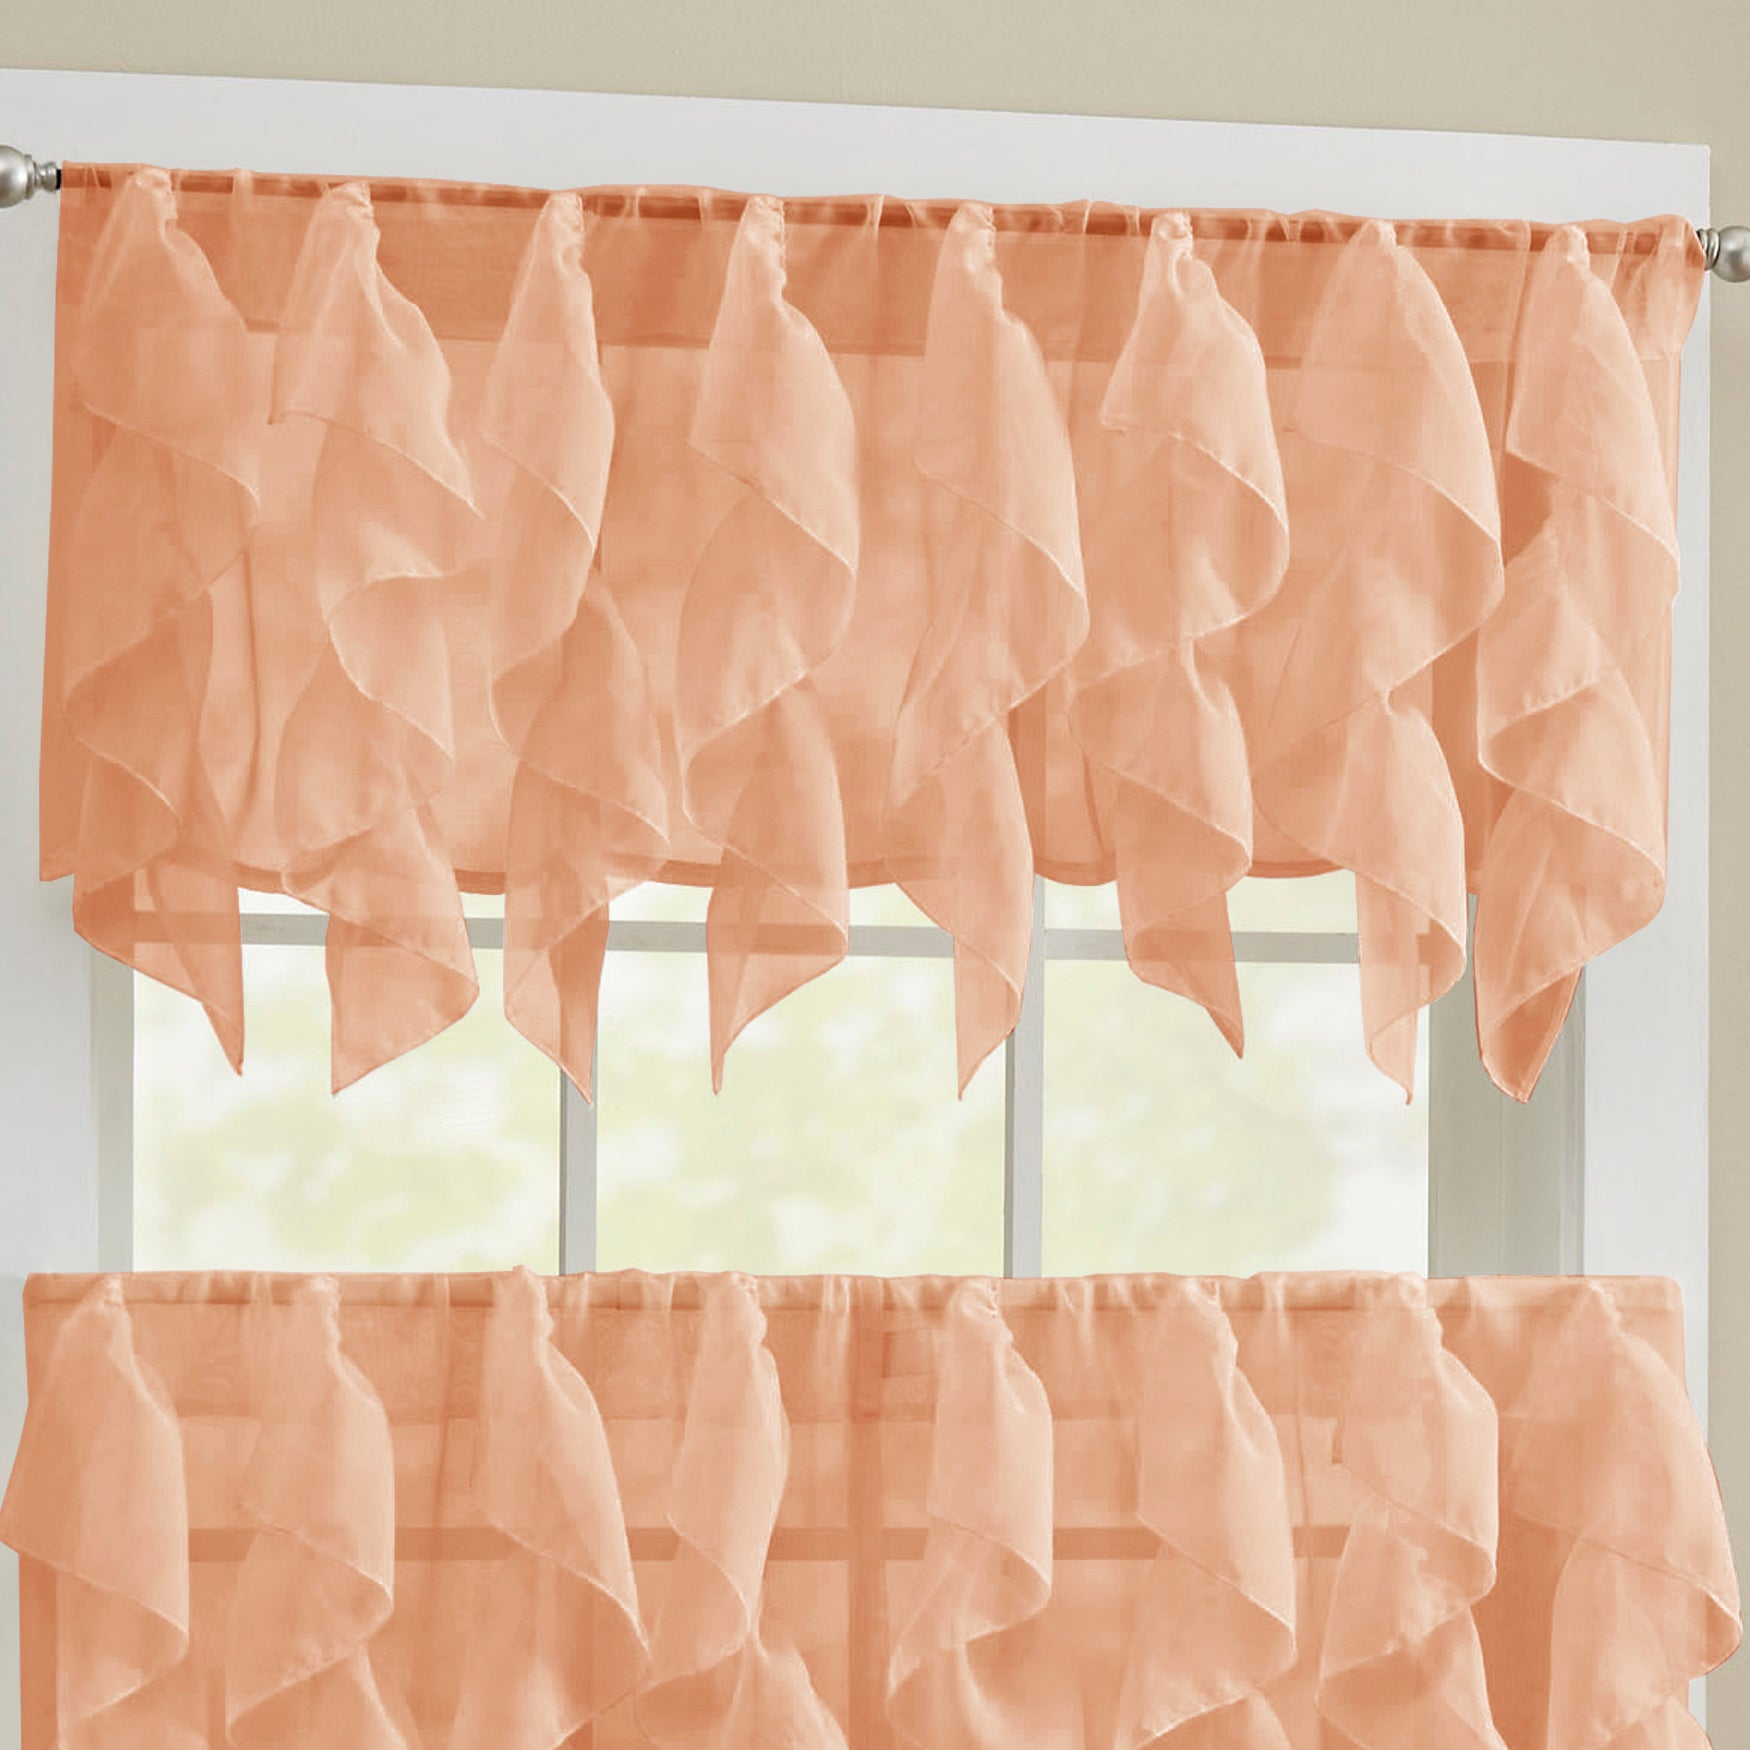 group com gradient treatment aliexpress garden panel valance voile item in alibaba sheer curtains drape tulle from home fabric on window curtain